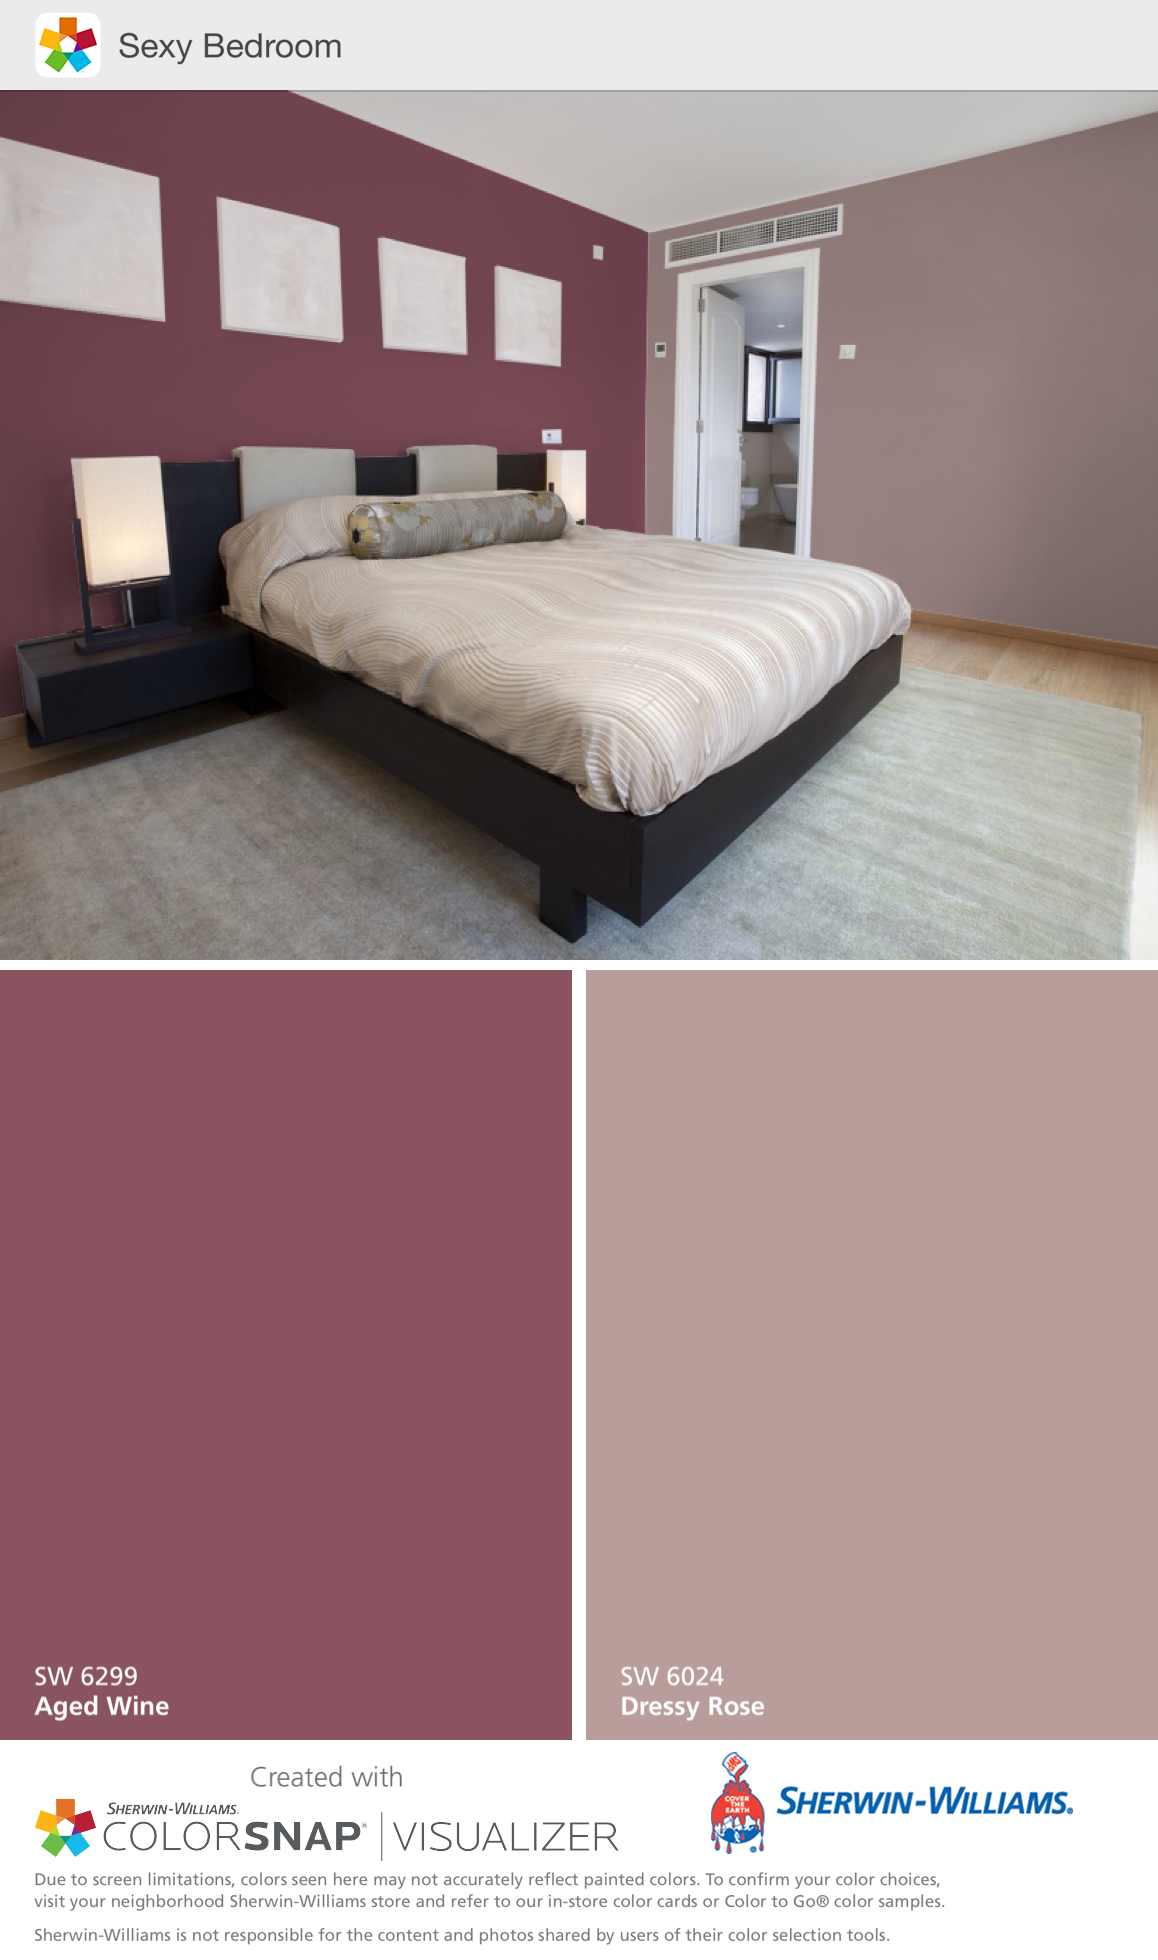 sexy bedroom colors. Interesting Colors Sexybedroomcolor To Sexy Bedroom Colors E